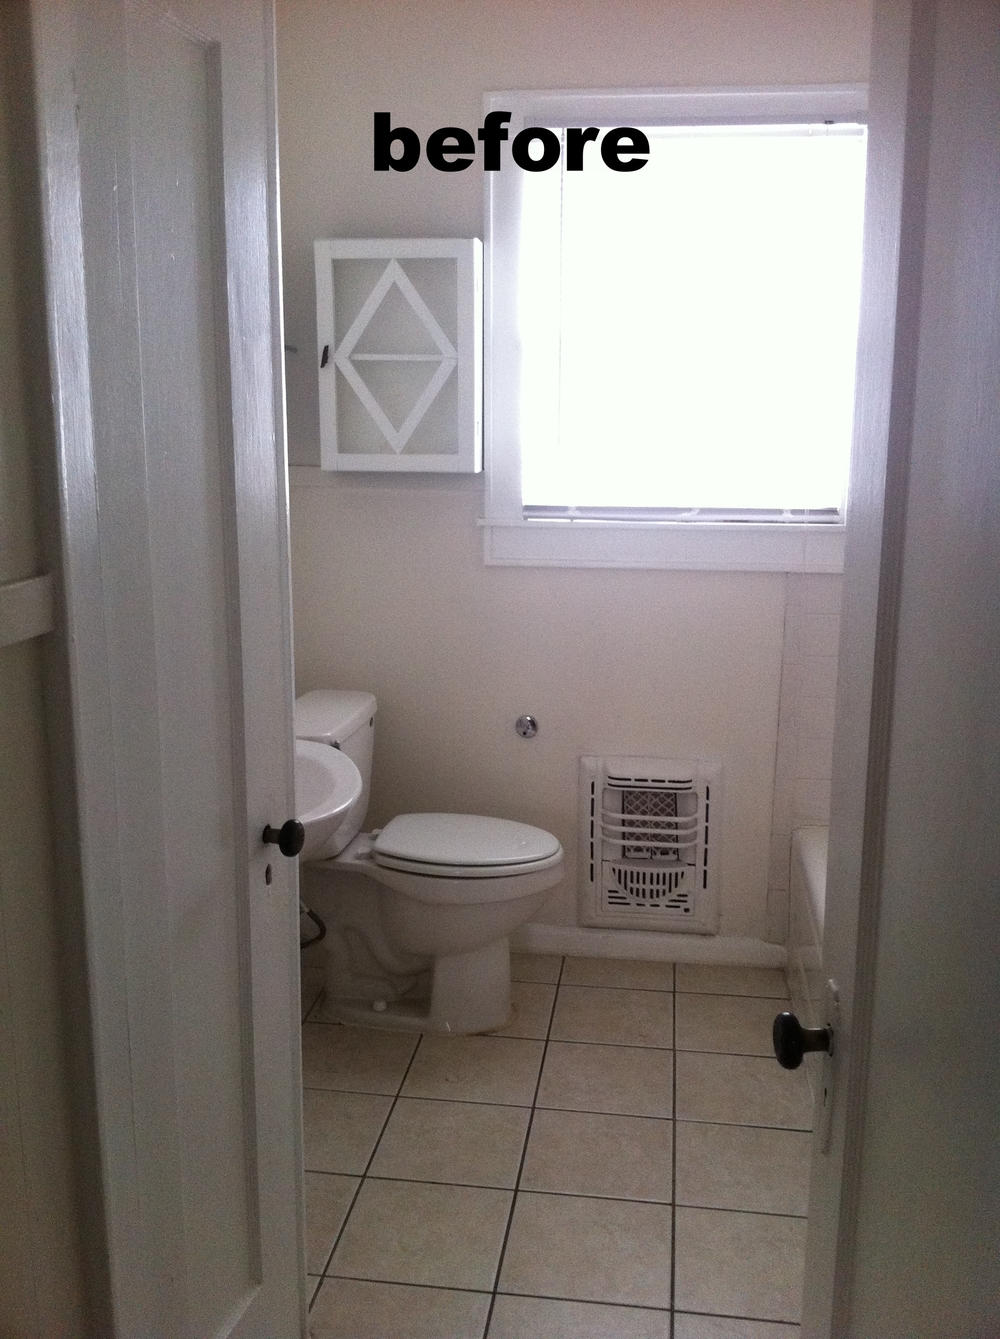 before bathroom.JPG